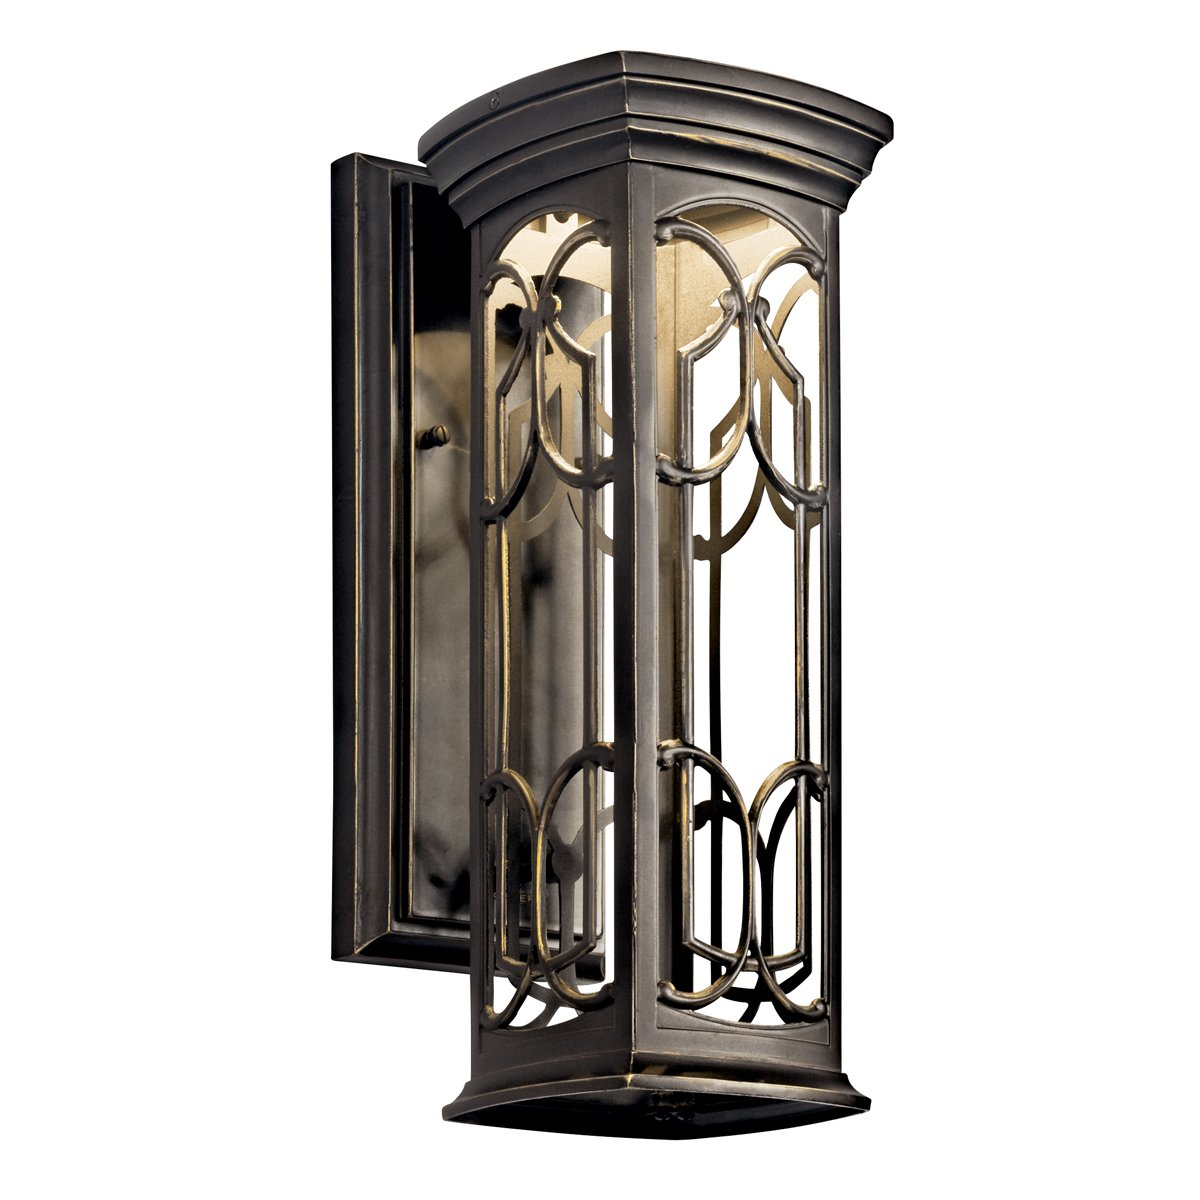 Outdoor led wall lantern olde bronze wall porch lights amazon com - Kichler Lighting 49229oz Led Franceasi 25 Inch Light Outdoor Led Wall Lantern Olde Bronze With Light Umber Wall Porch Lights Amazon Com